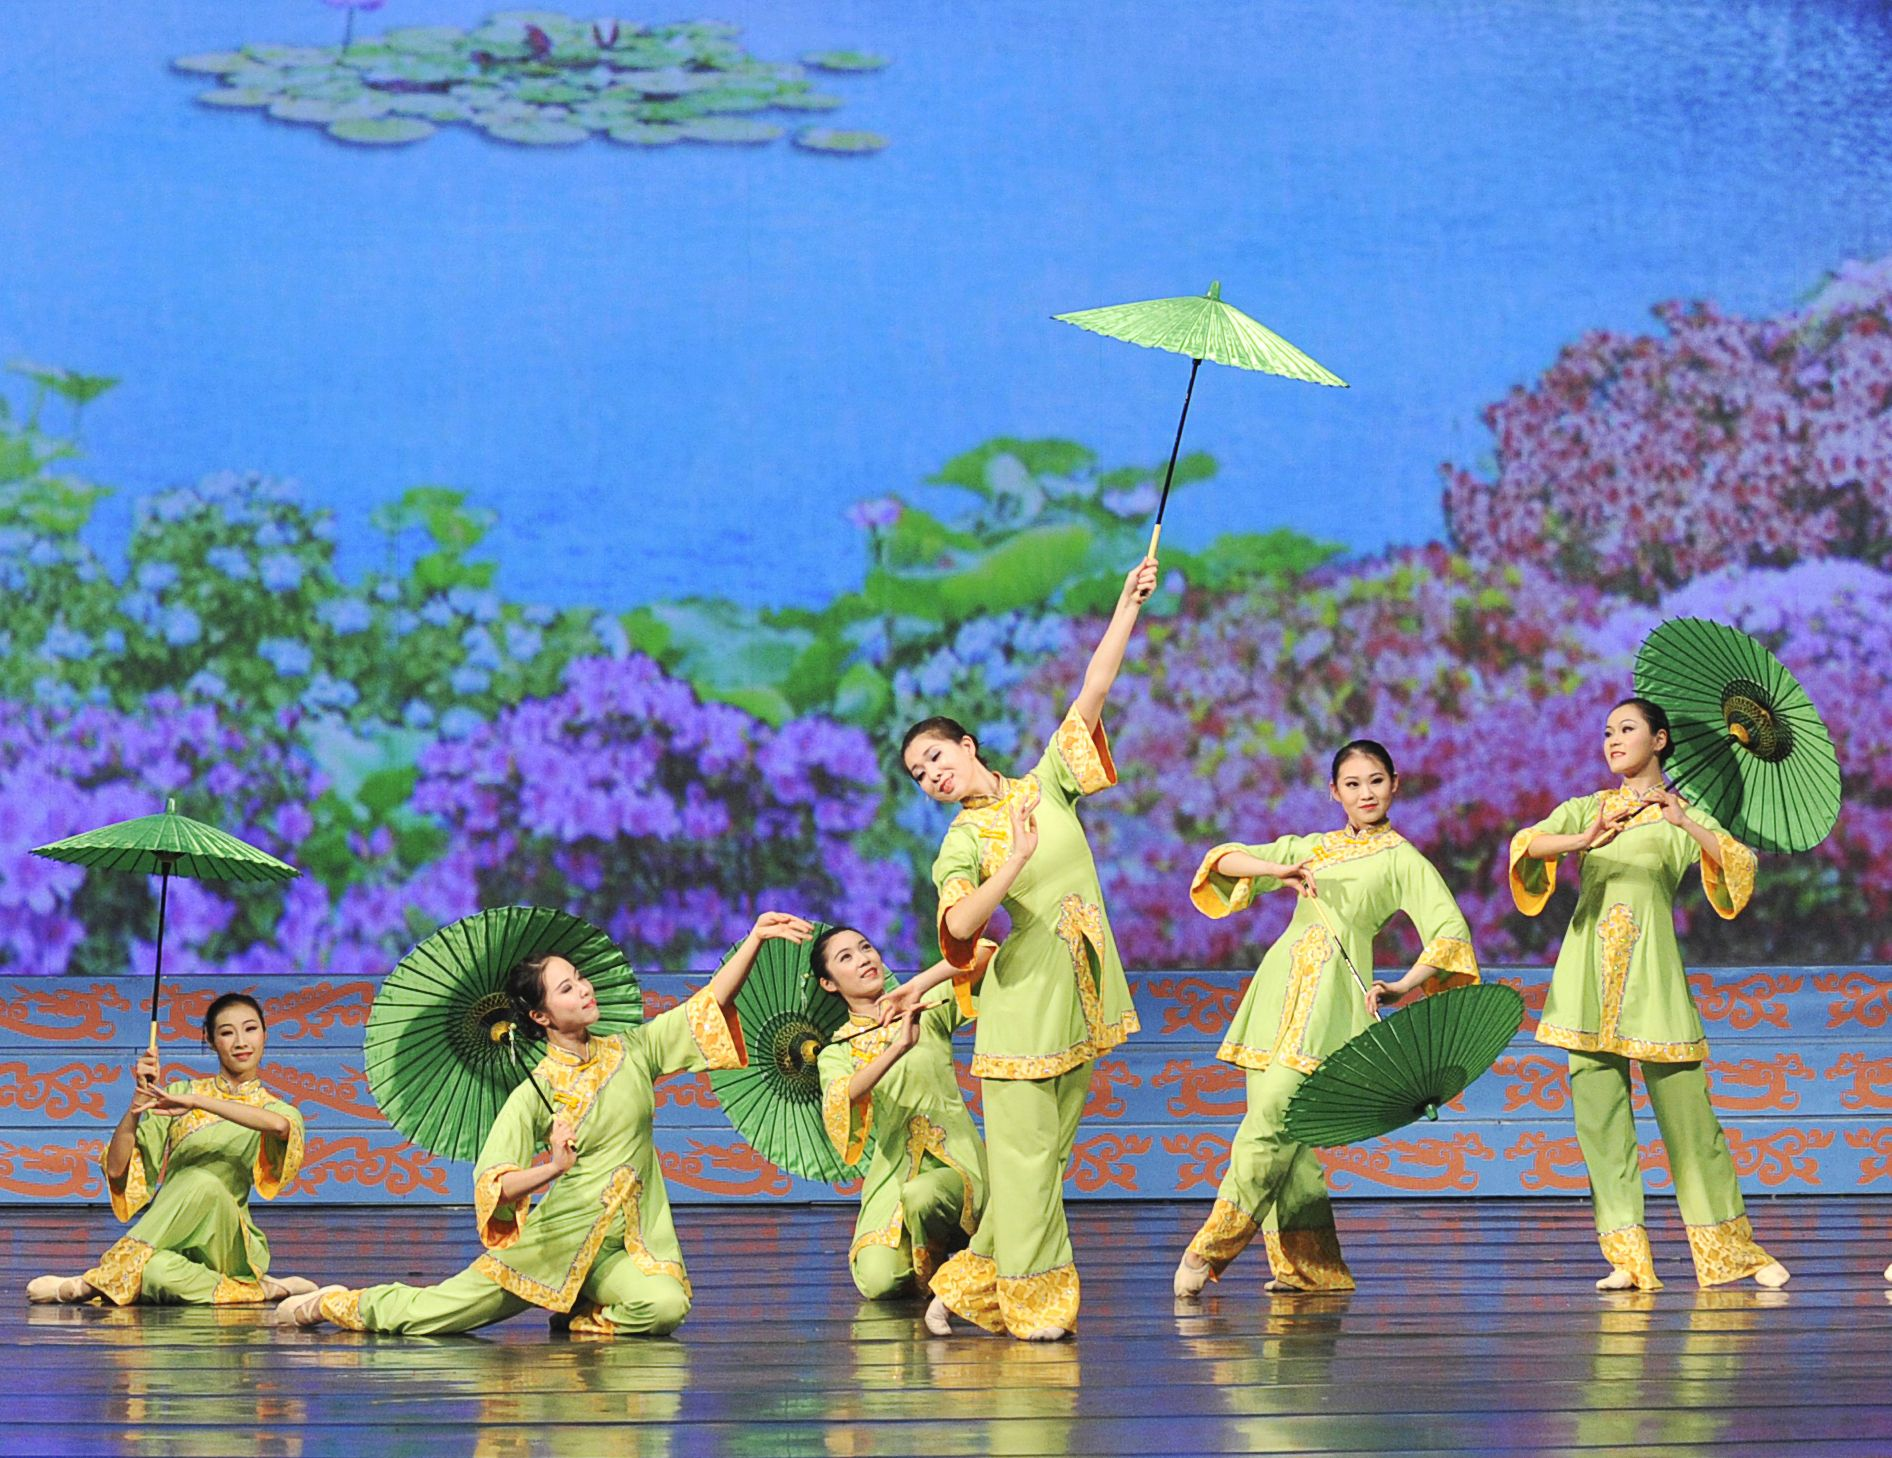 Shen Yun Returns To Los Angeles With All New Dance Spectacular Adds A Sixth Venue Art Performance Art Falun